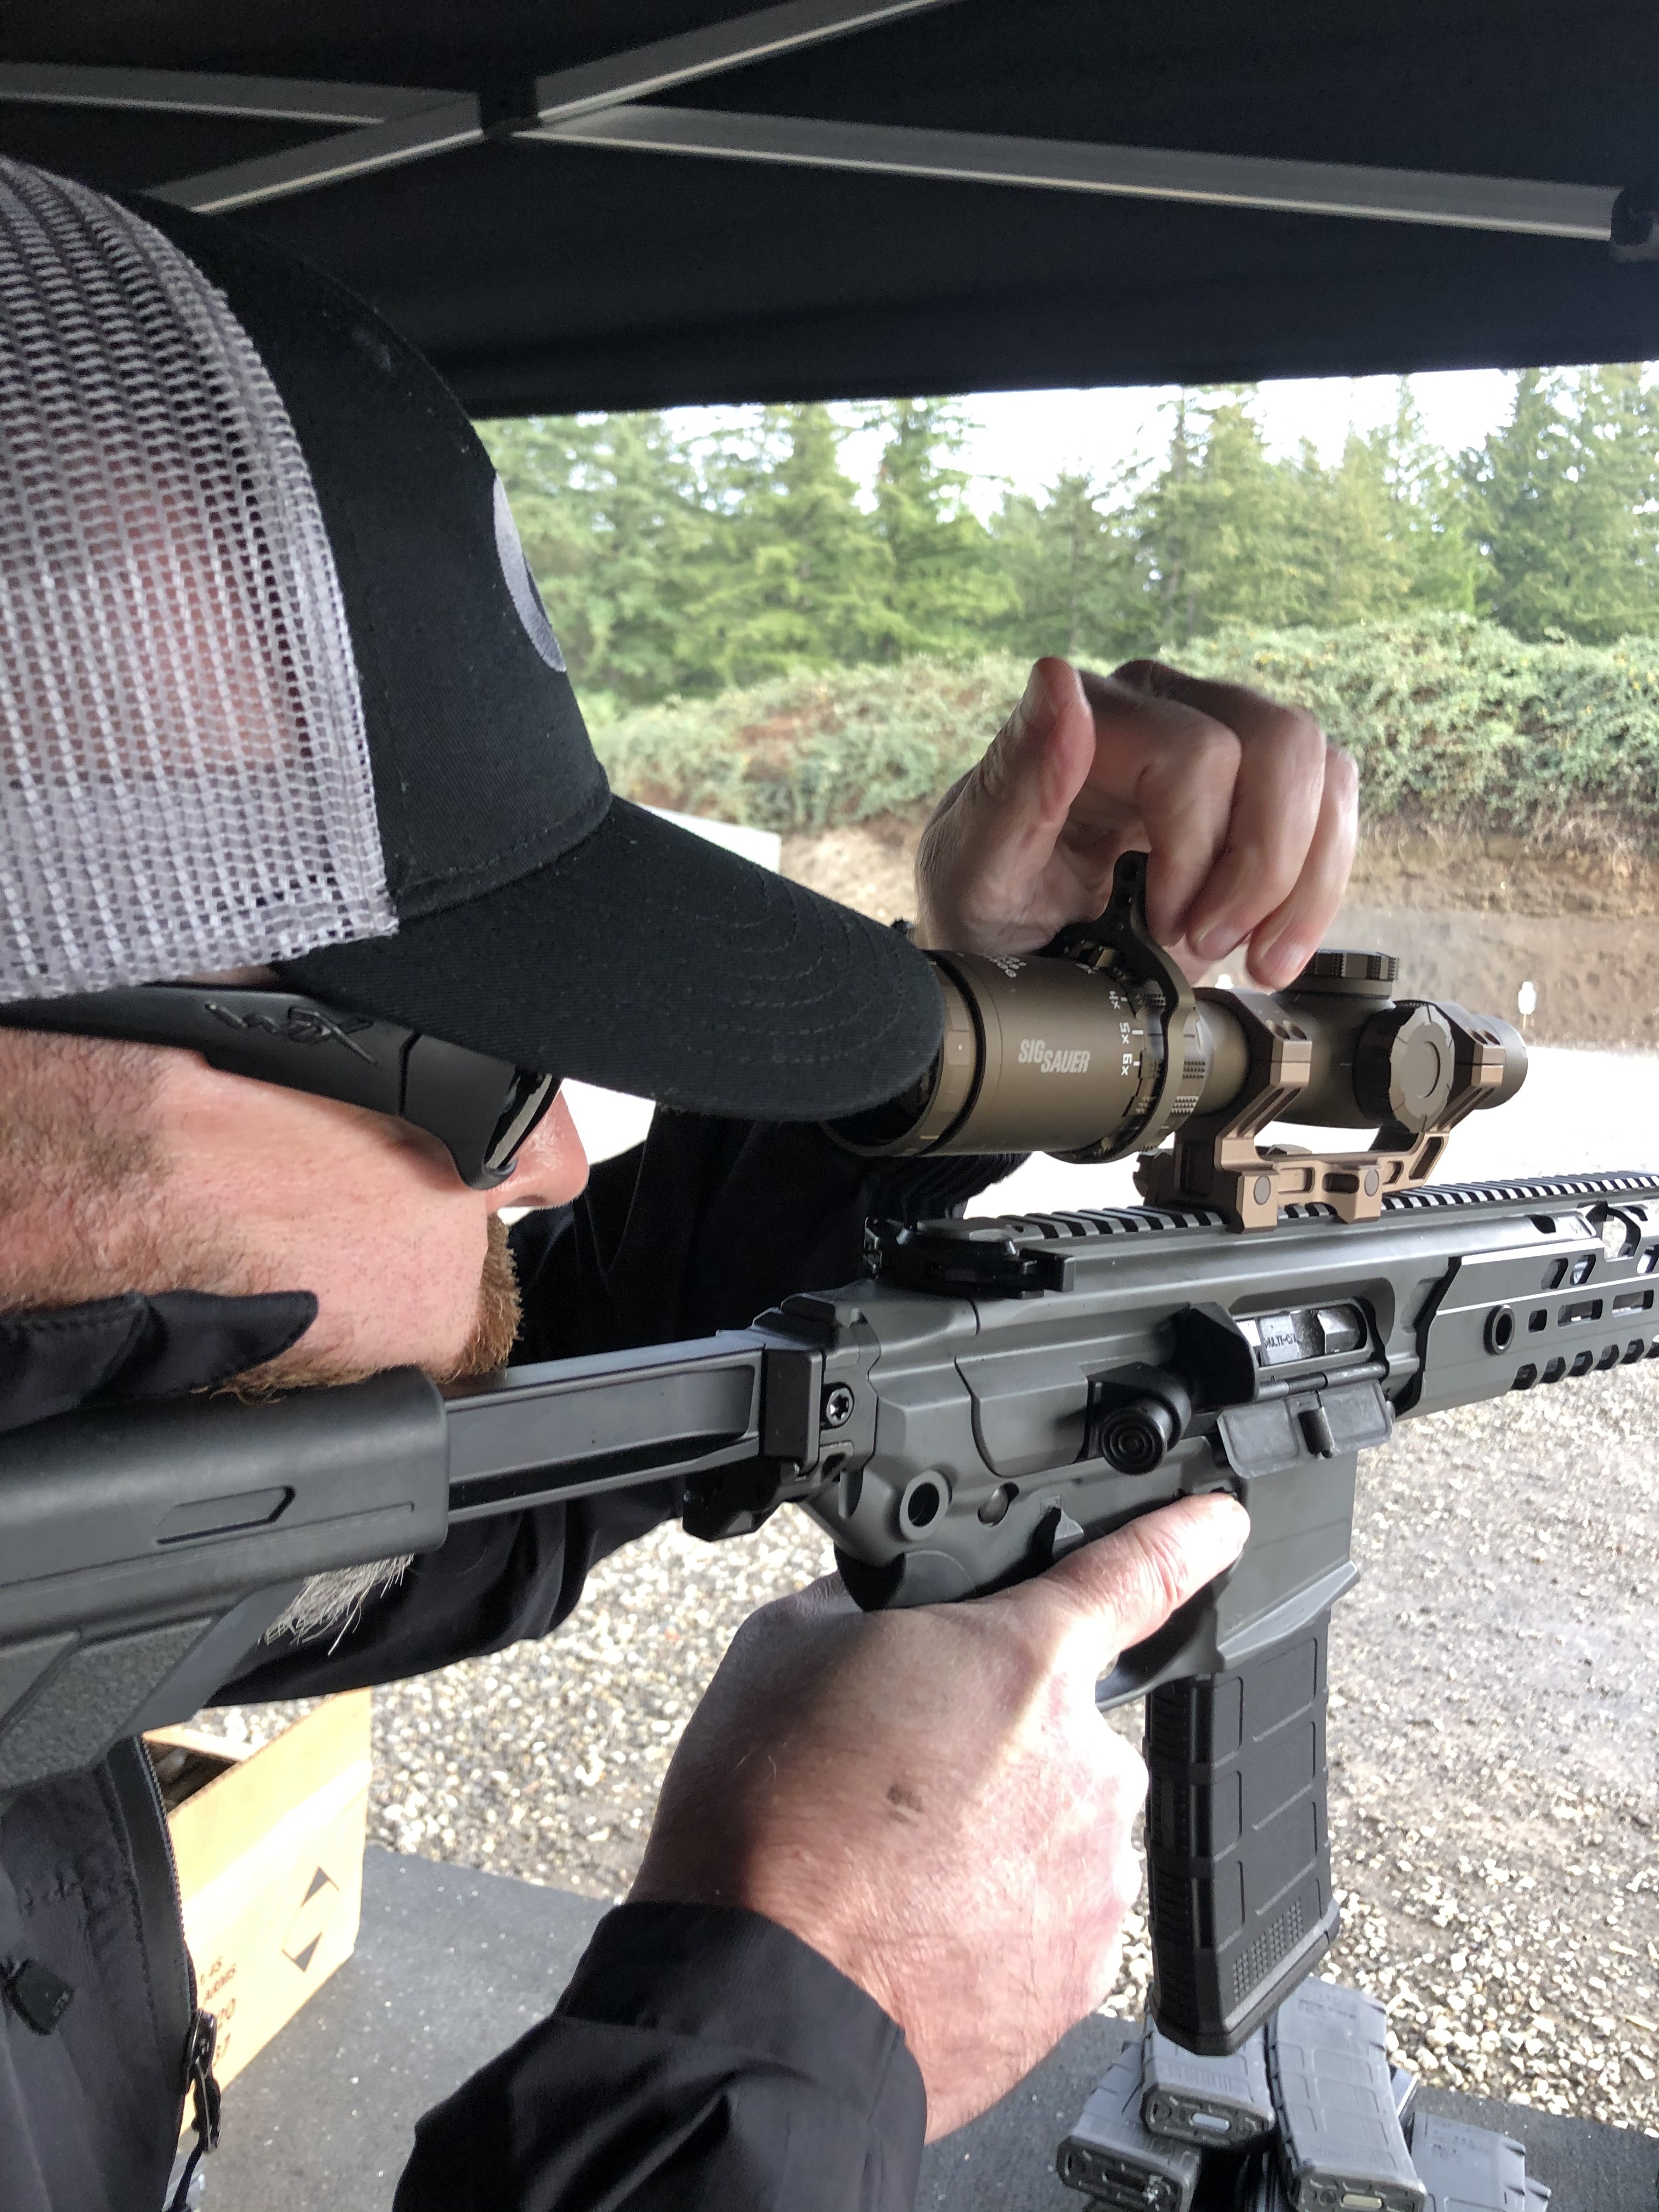 The Sig Sauer TANGO6T performed better than imagined on the range. Gary, Team Gun Talk, takes aim with the TANGO6T.